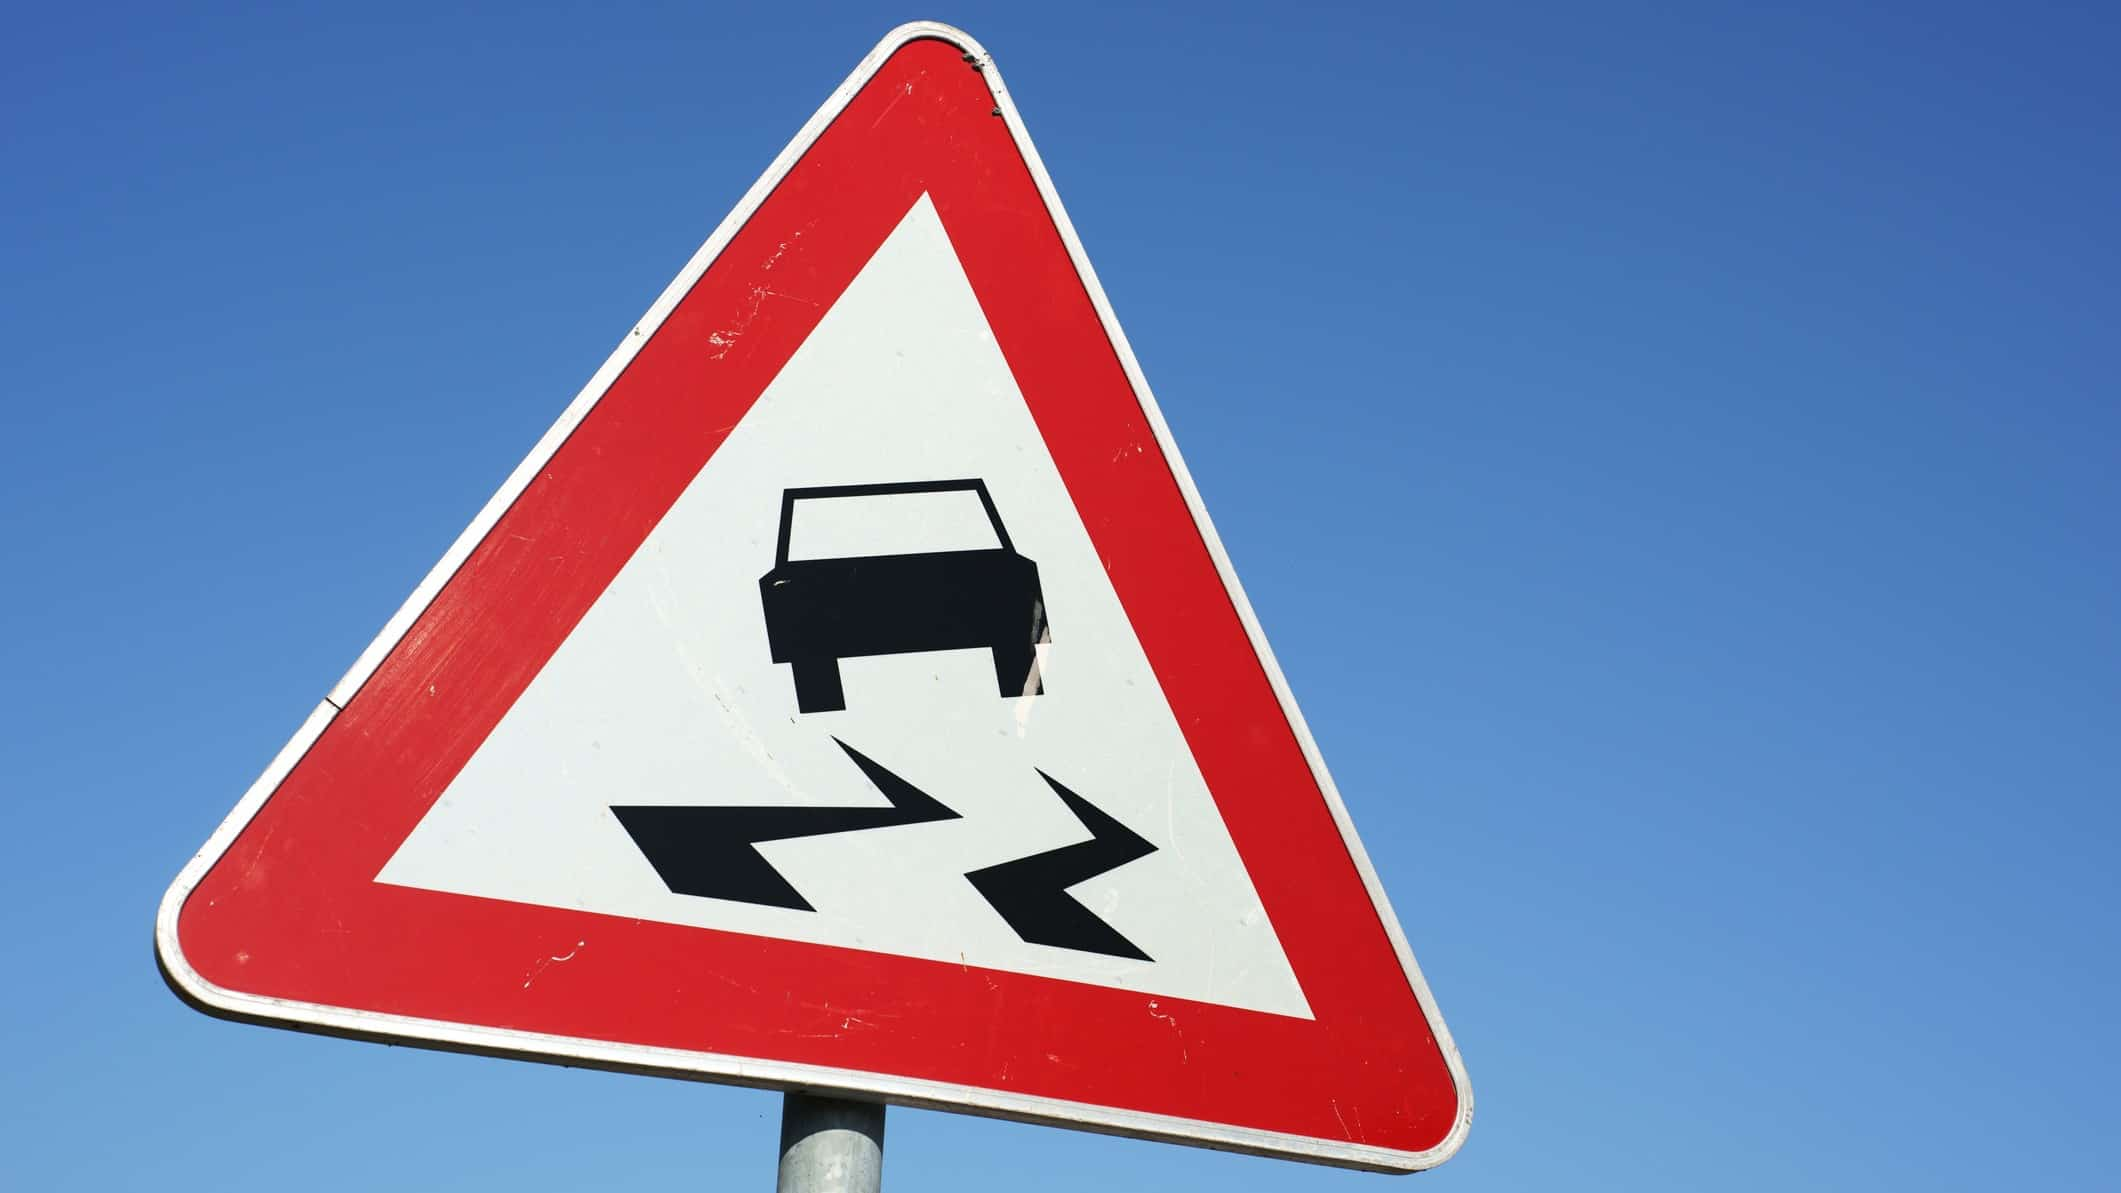 ASX share price slide represented by urban street sign with car sliding